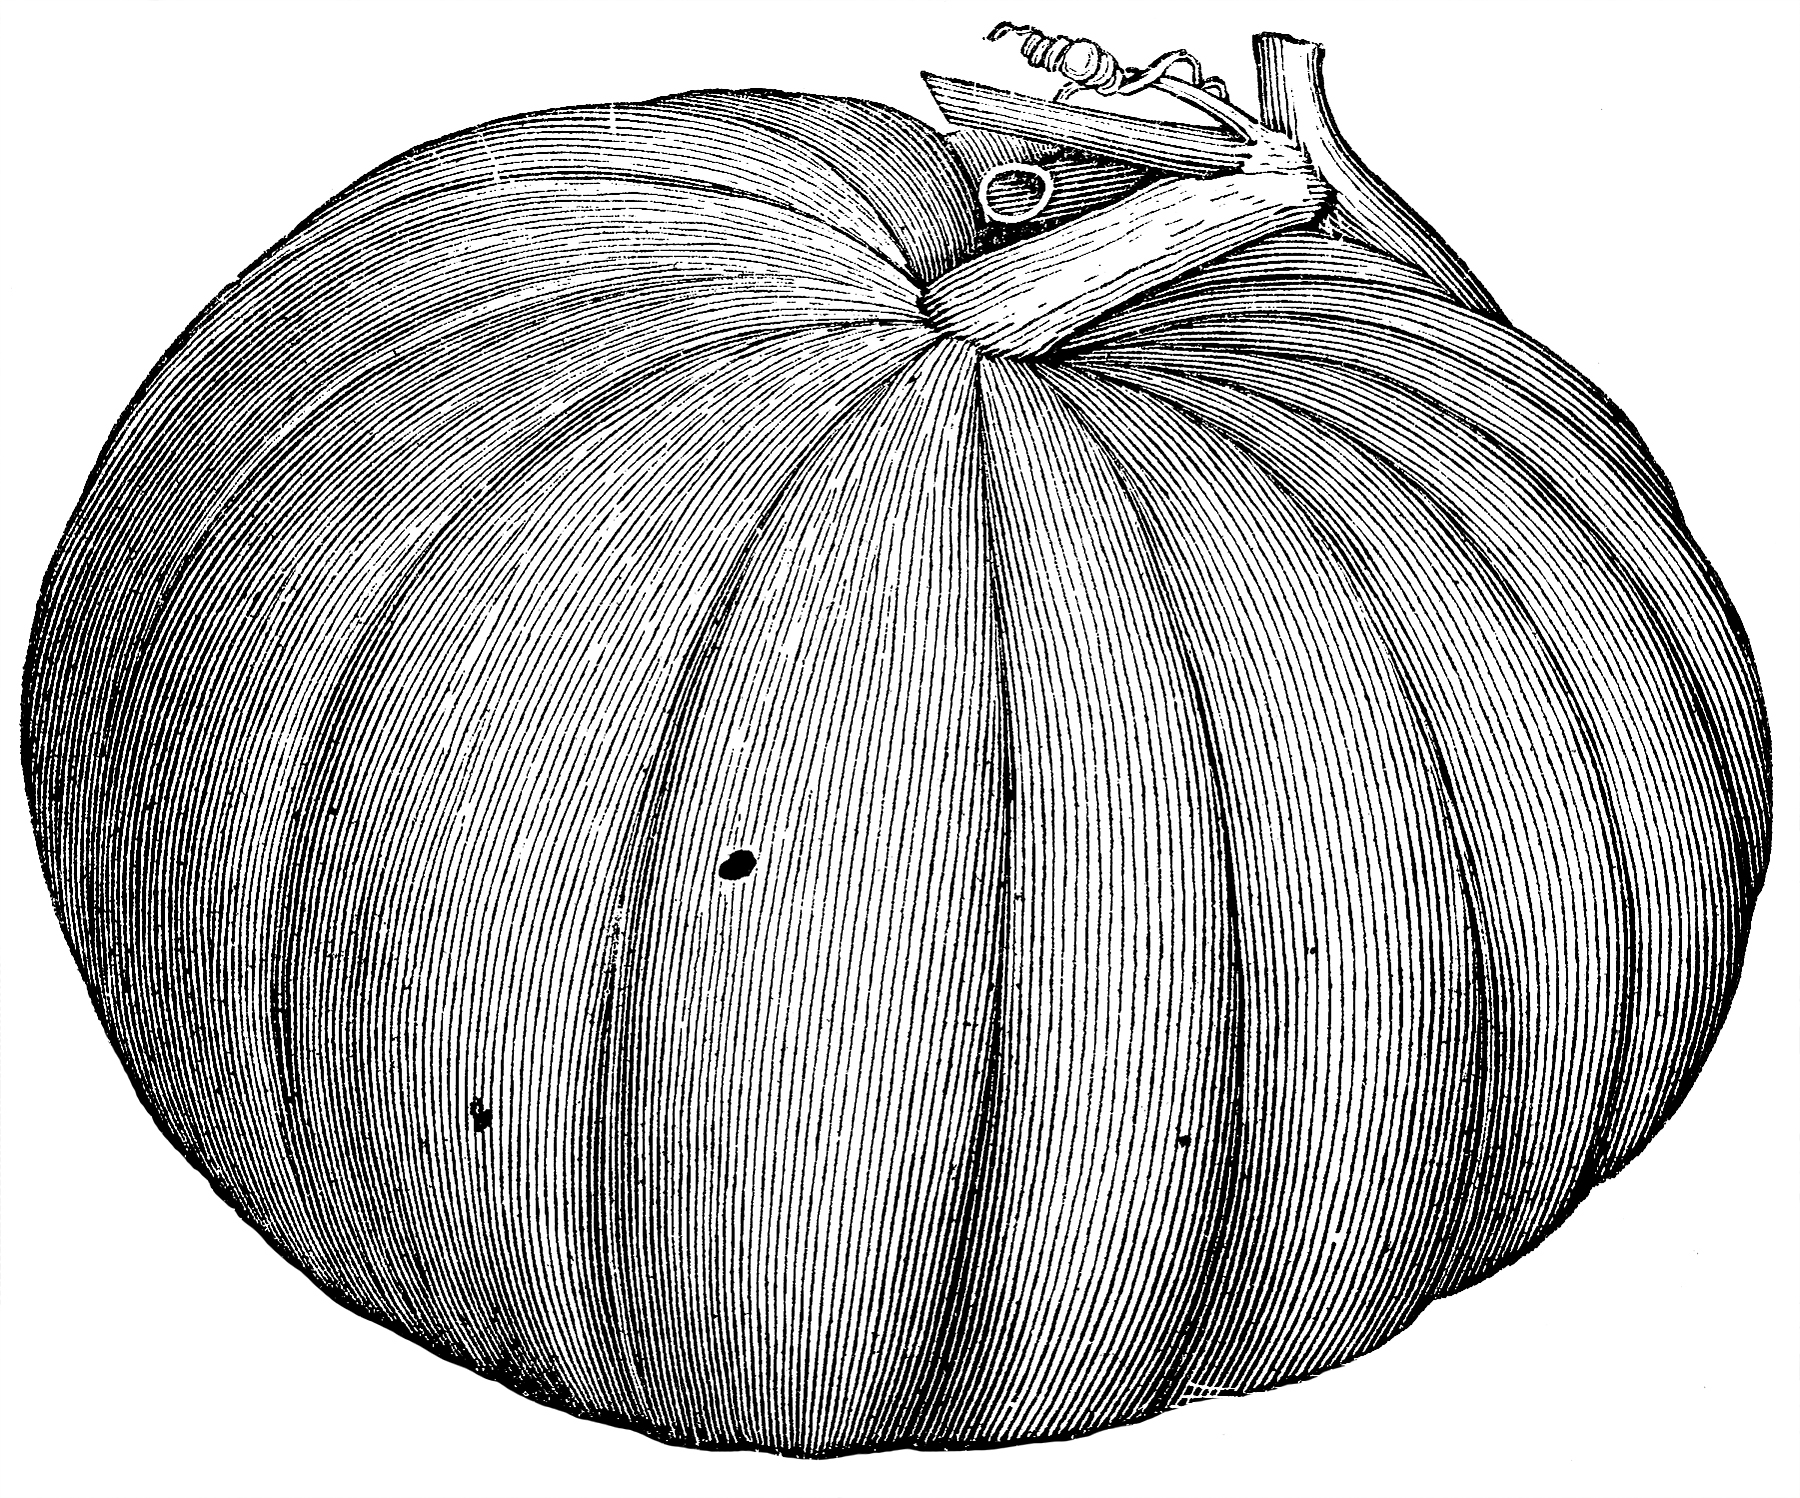 Vintage Detailed Black and White Pumpkin Image! - The ...